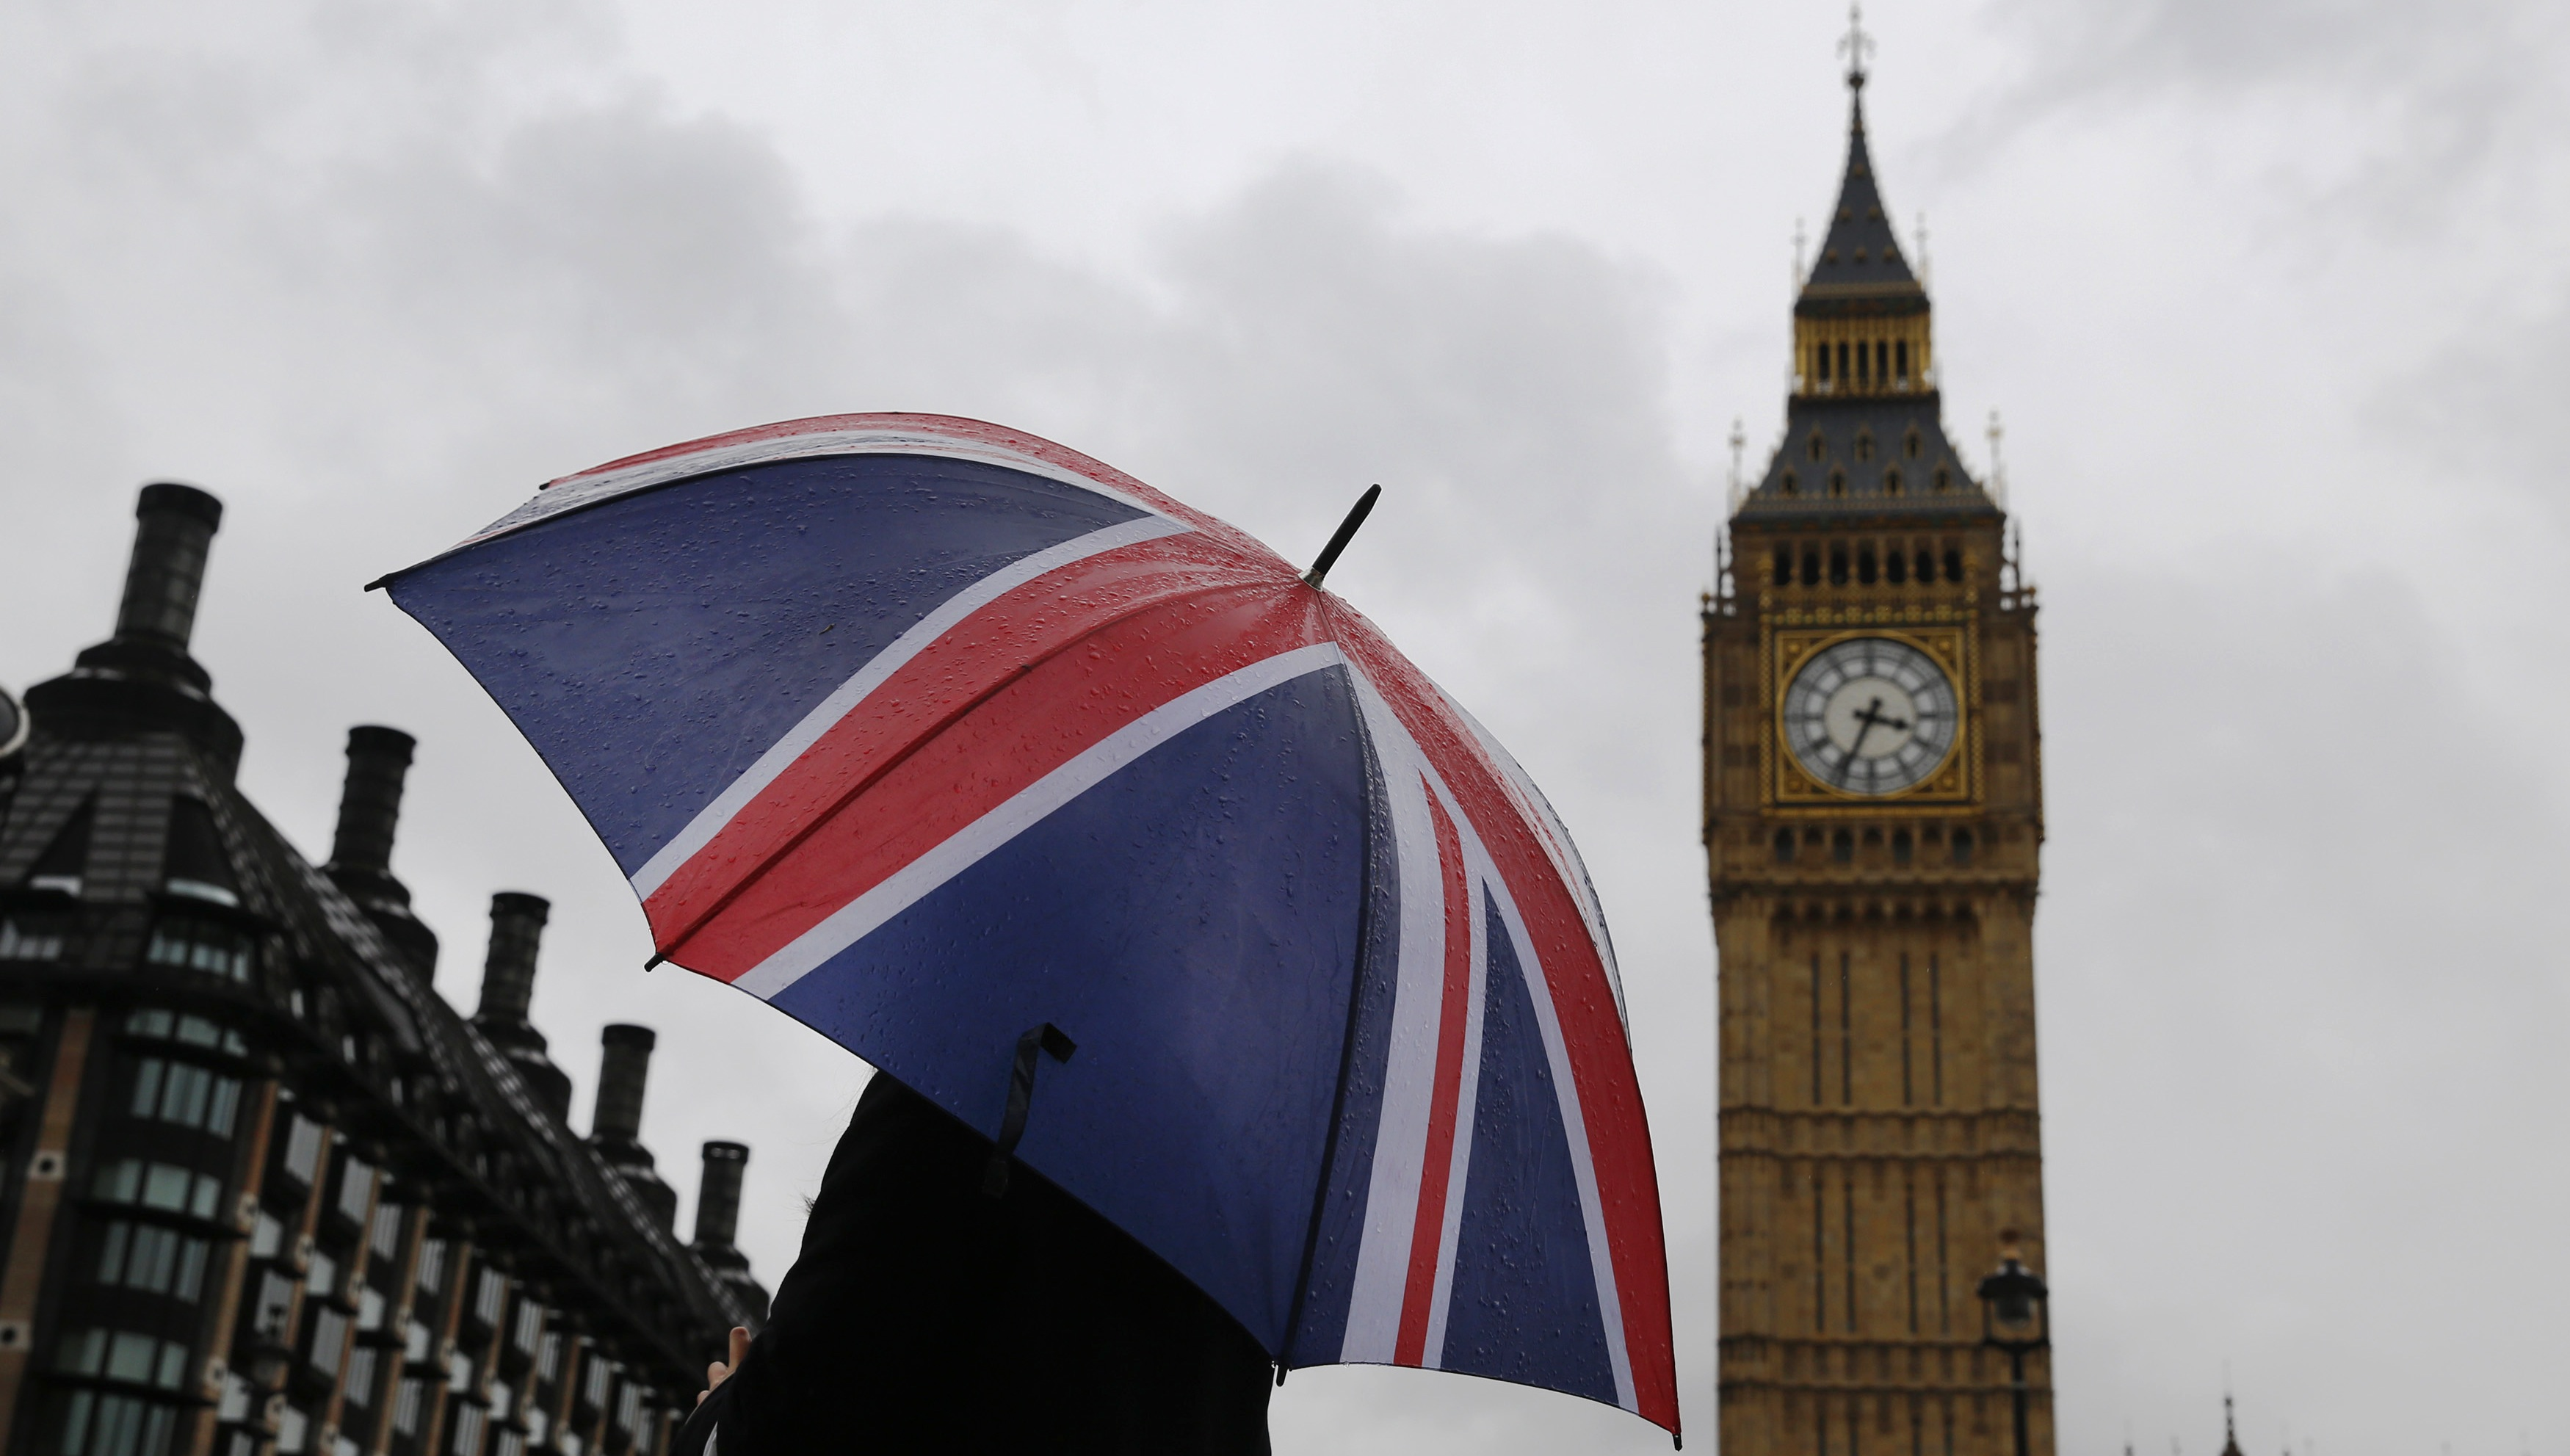 A woman holds a Union flag umbrella in front of the Big Ben clock tower (R) and the Houses of Parliament in London October 4, 2014. REUTERS/Luke MacGregor (BRITAIN - Tags: ENVIRONMENT CITYSCAPE TRAVEL)